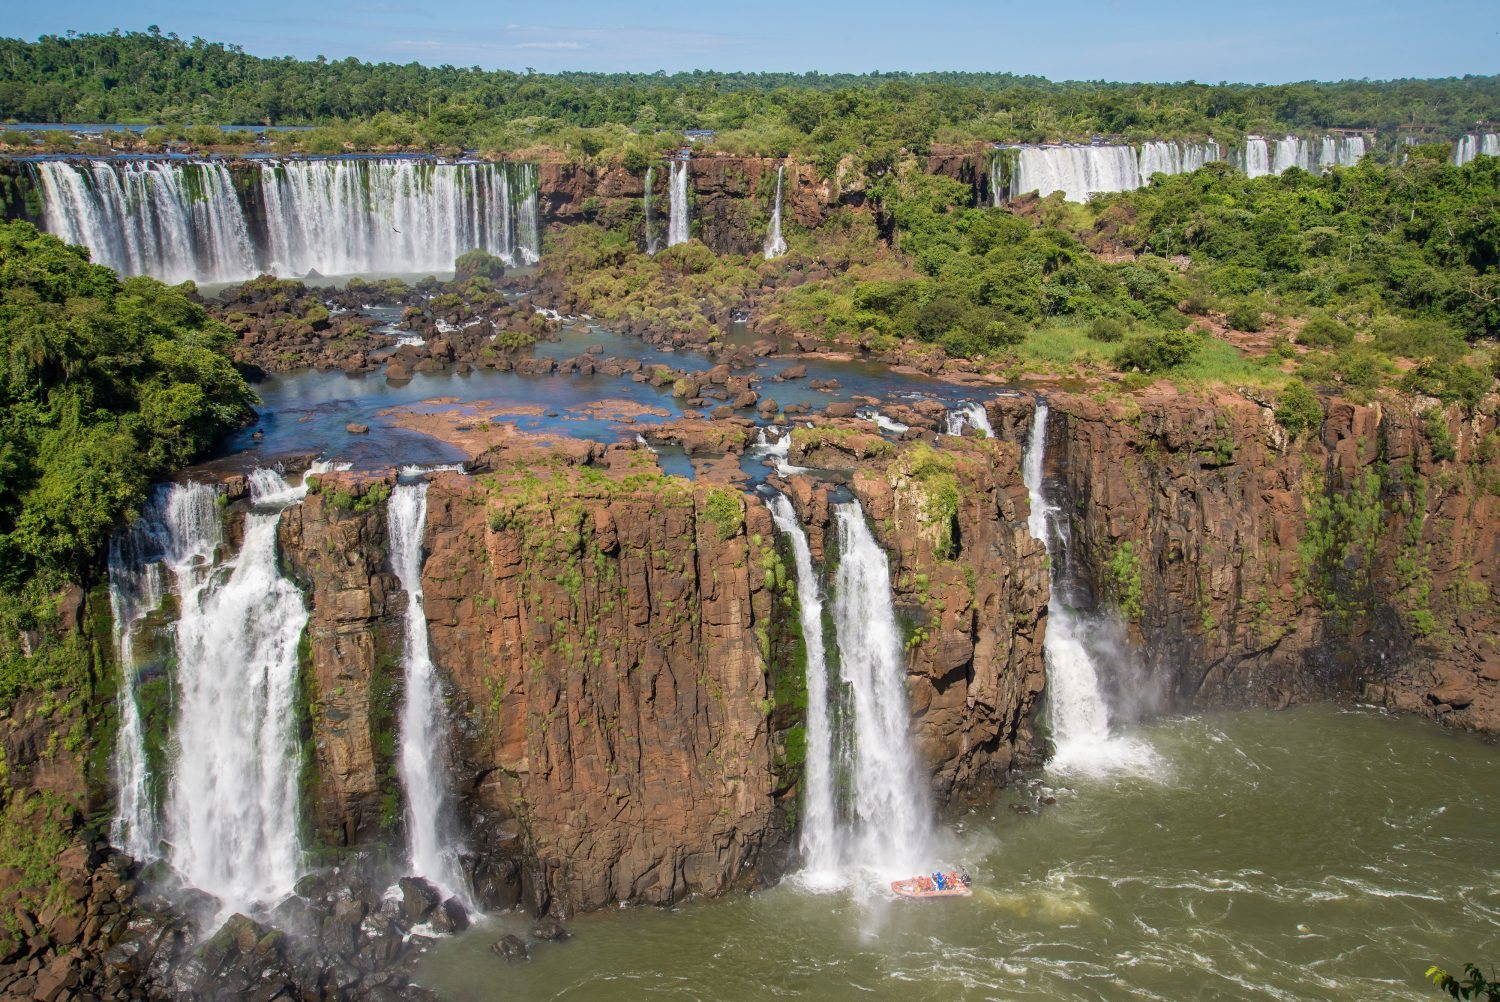 The Argentine side of the Iguaçu falls.